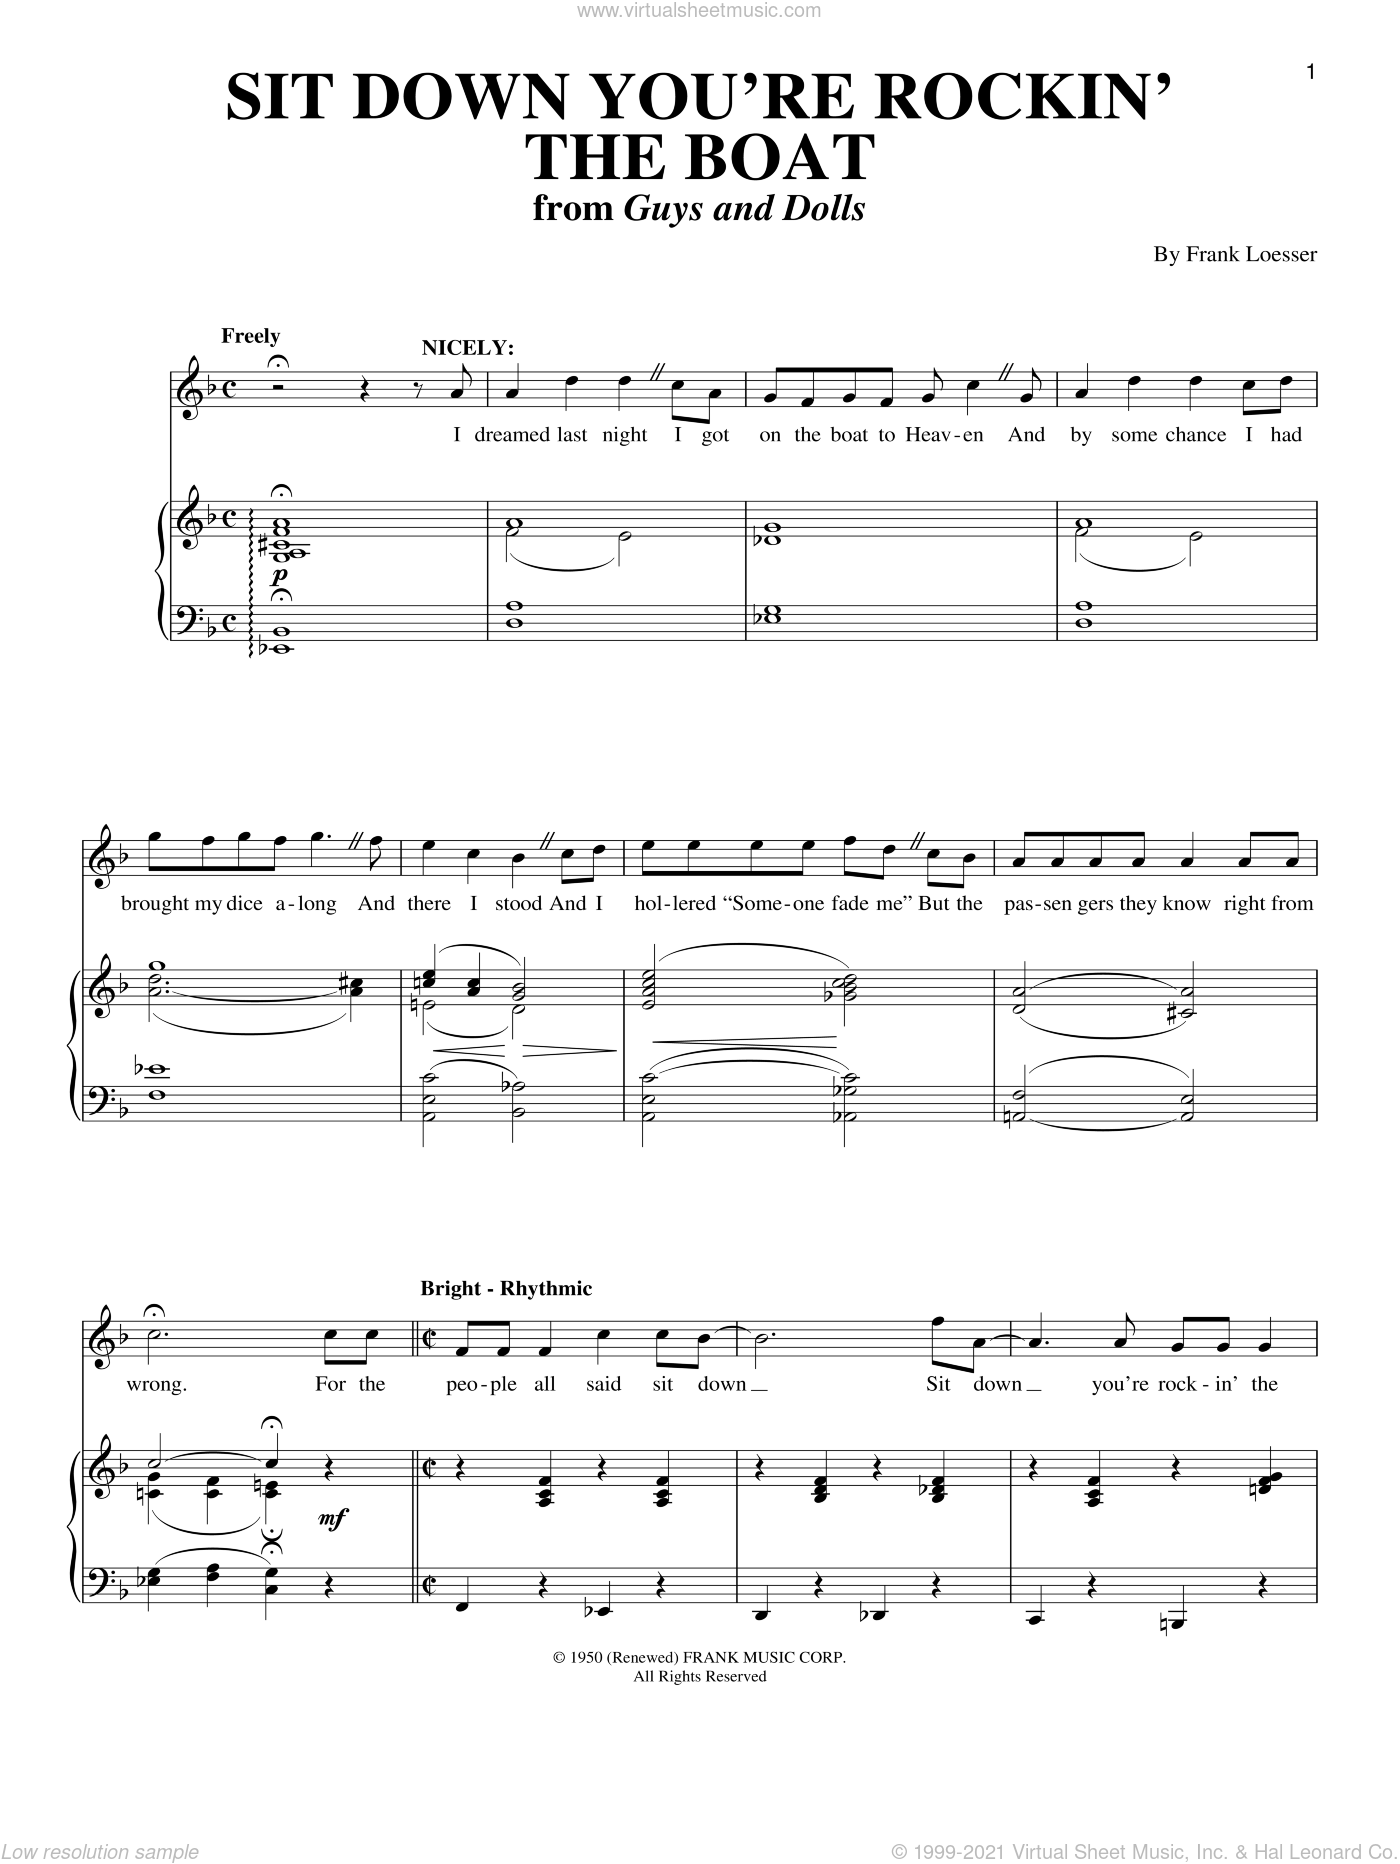 Sit Down You're Rockin' The Boat sheet music for voice and piano by Frank Loesser and Guys And Dolls (Musical), intermediate skill level